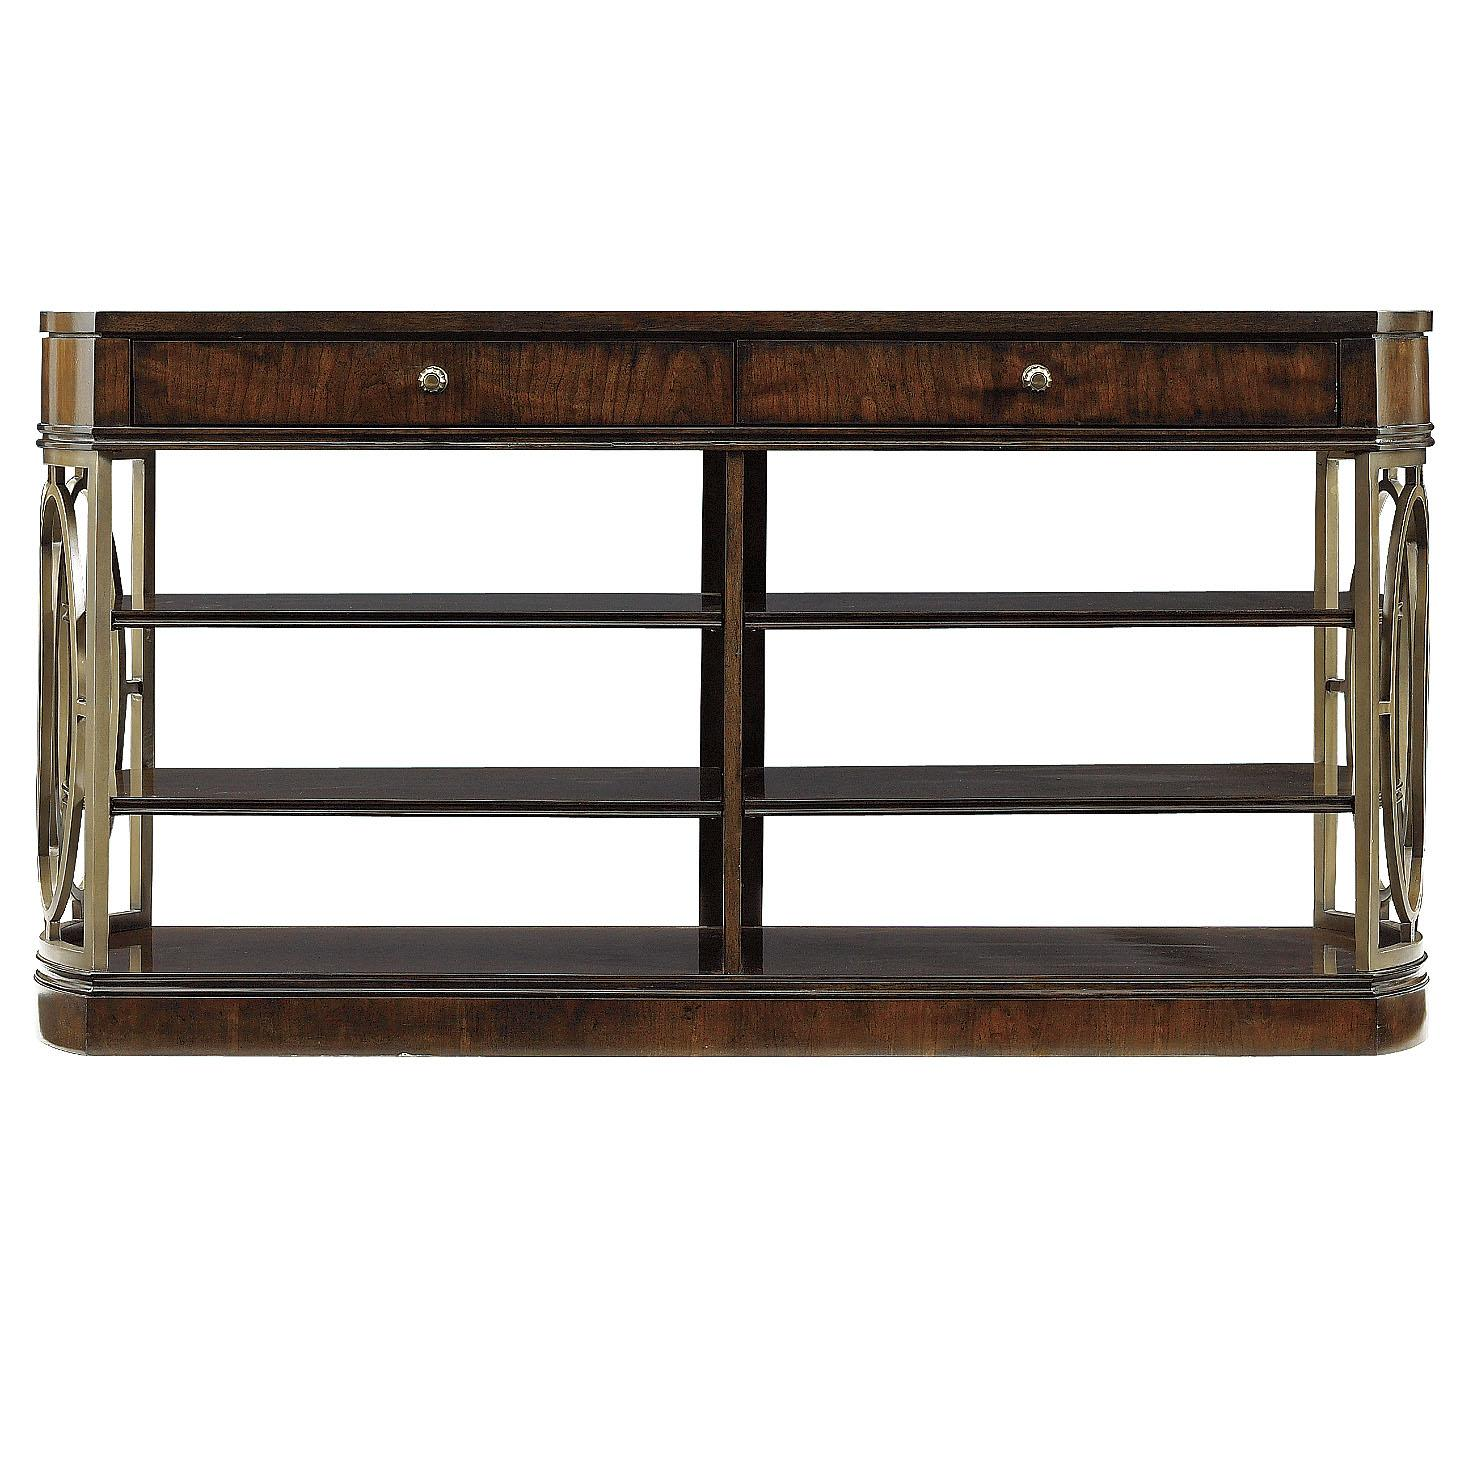 Stanley Furniture Avalon Heights Empire Media Console - Item Number: 193-17-31